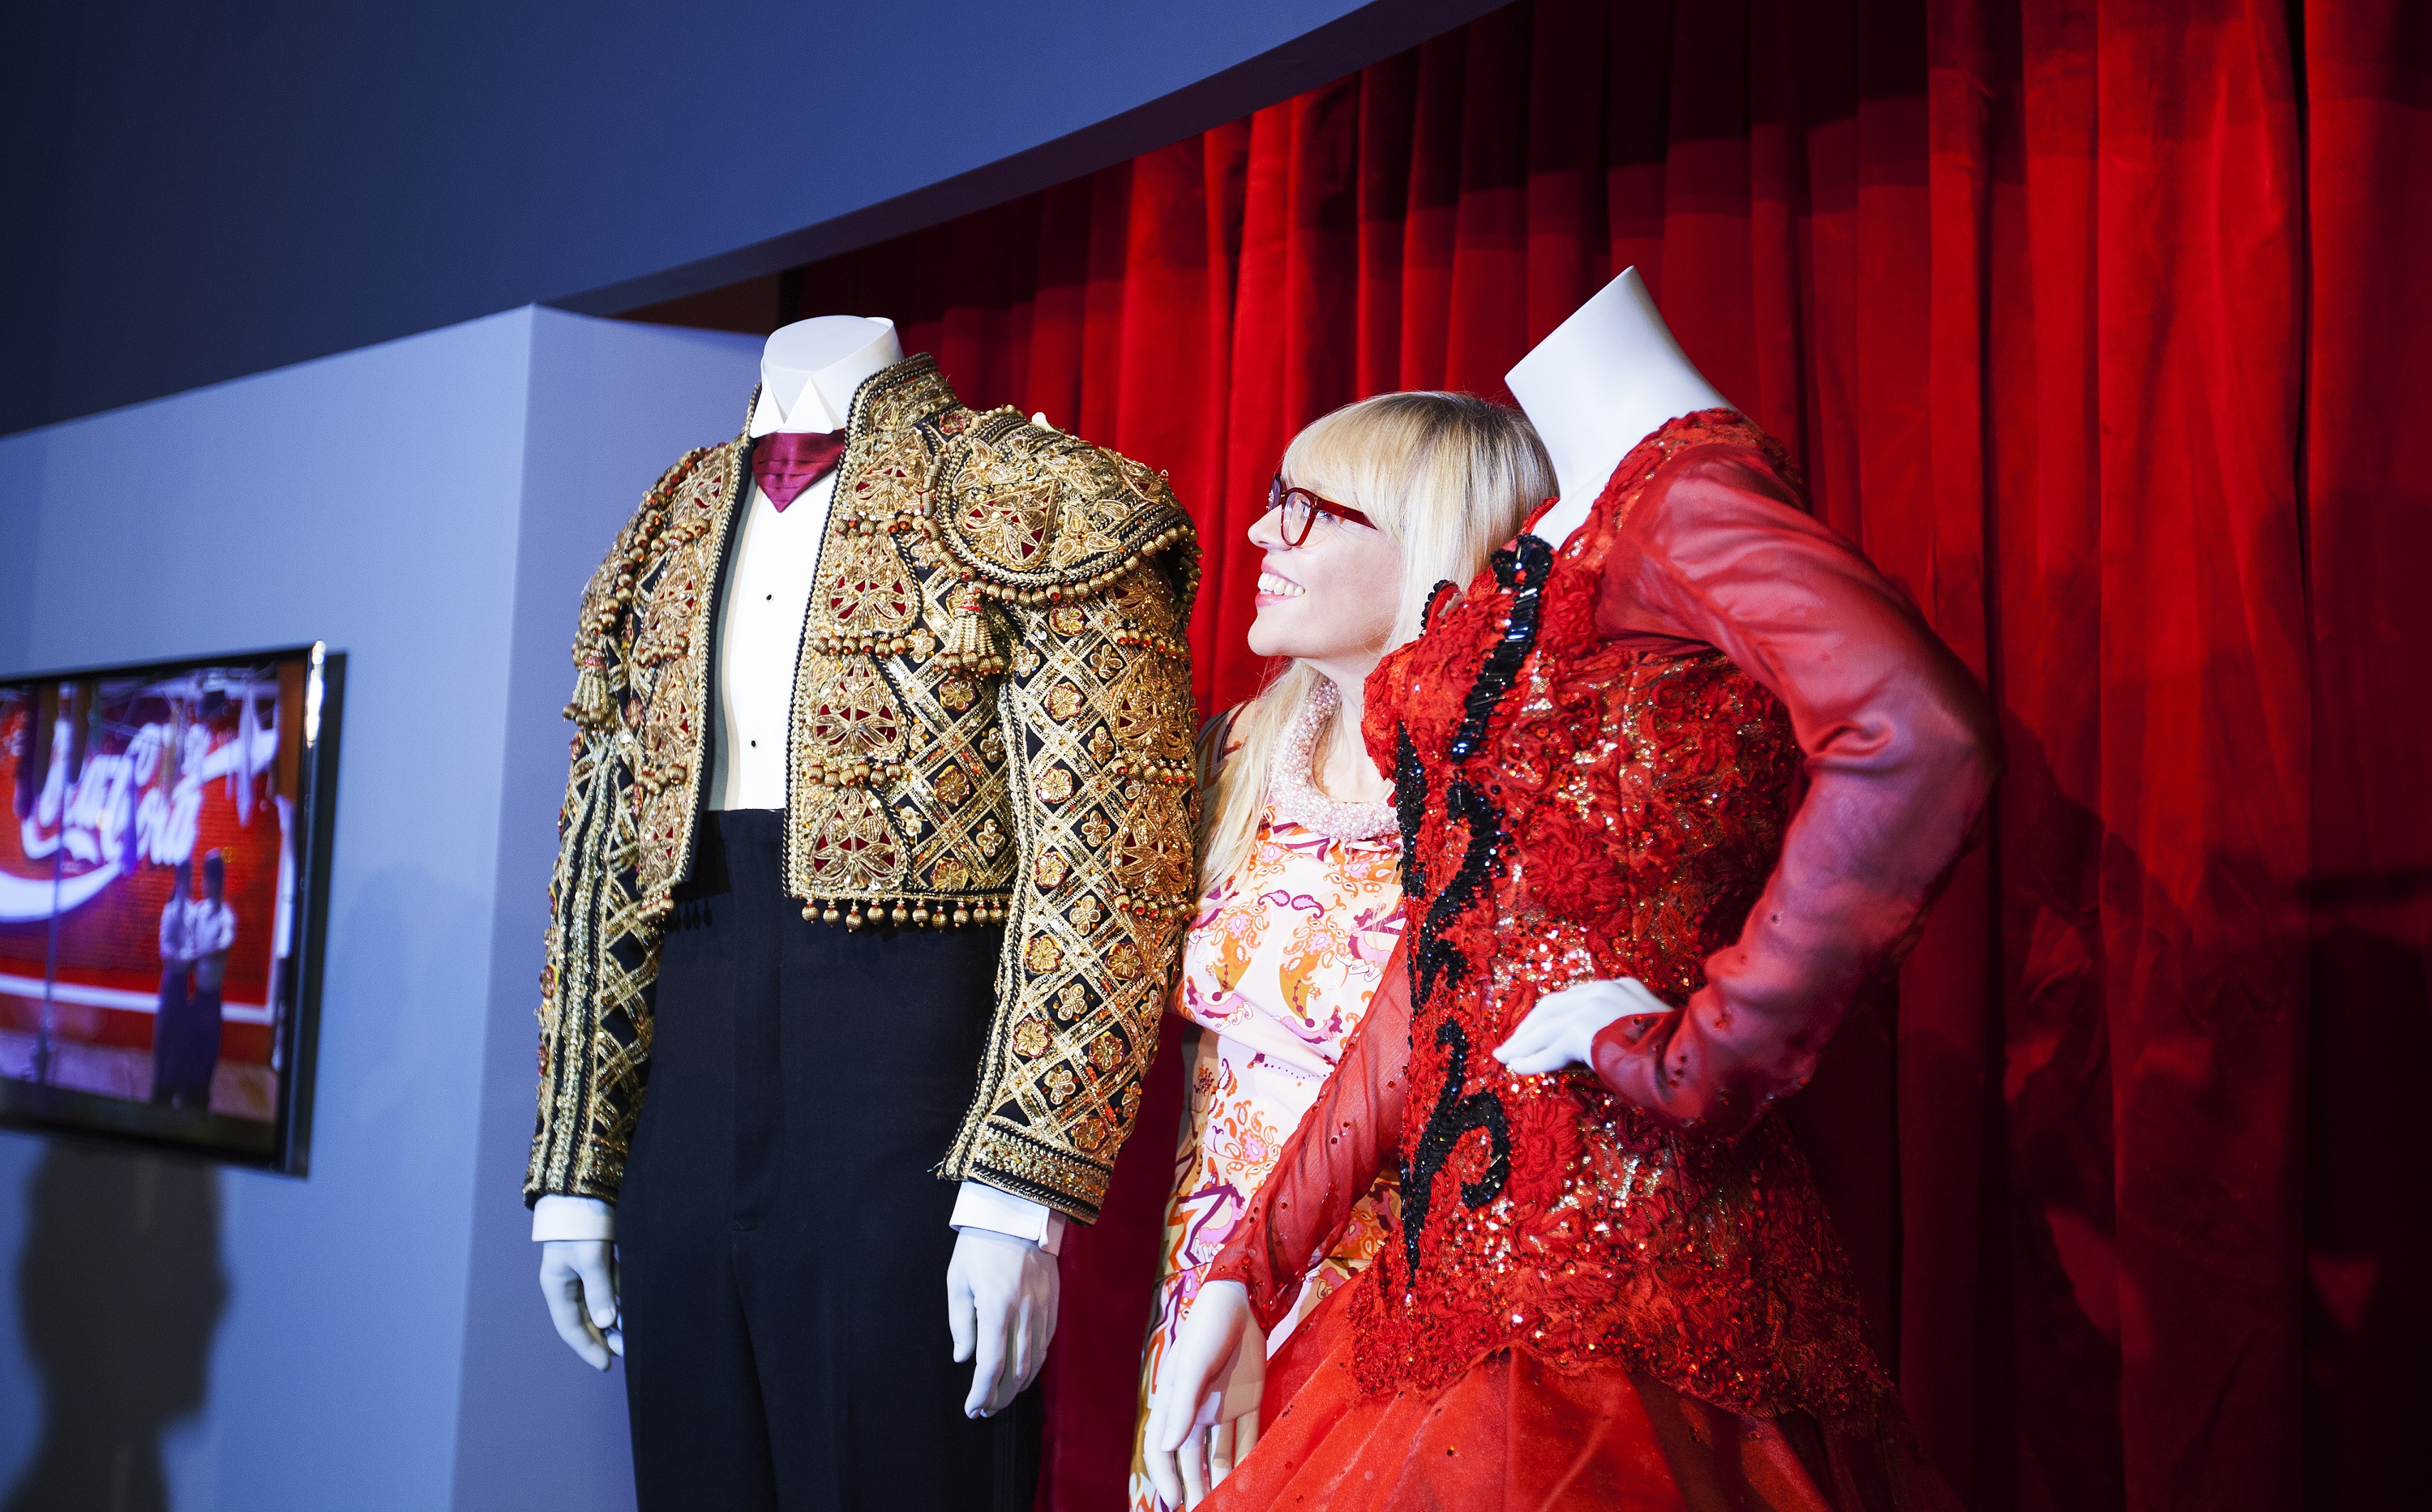 The Strictly Ballroom Exhibition